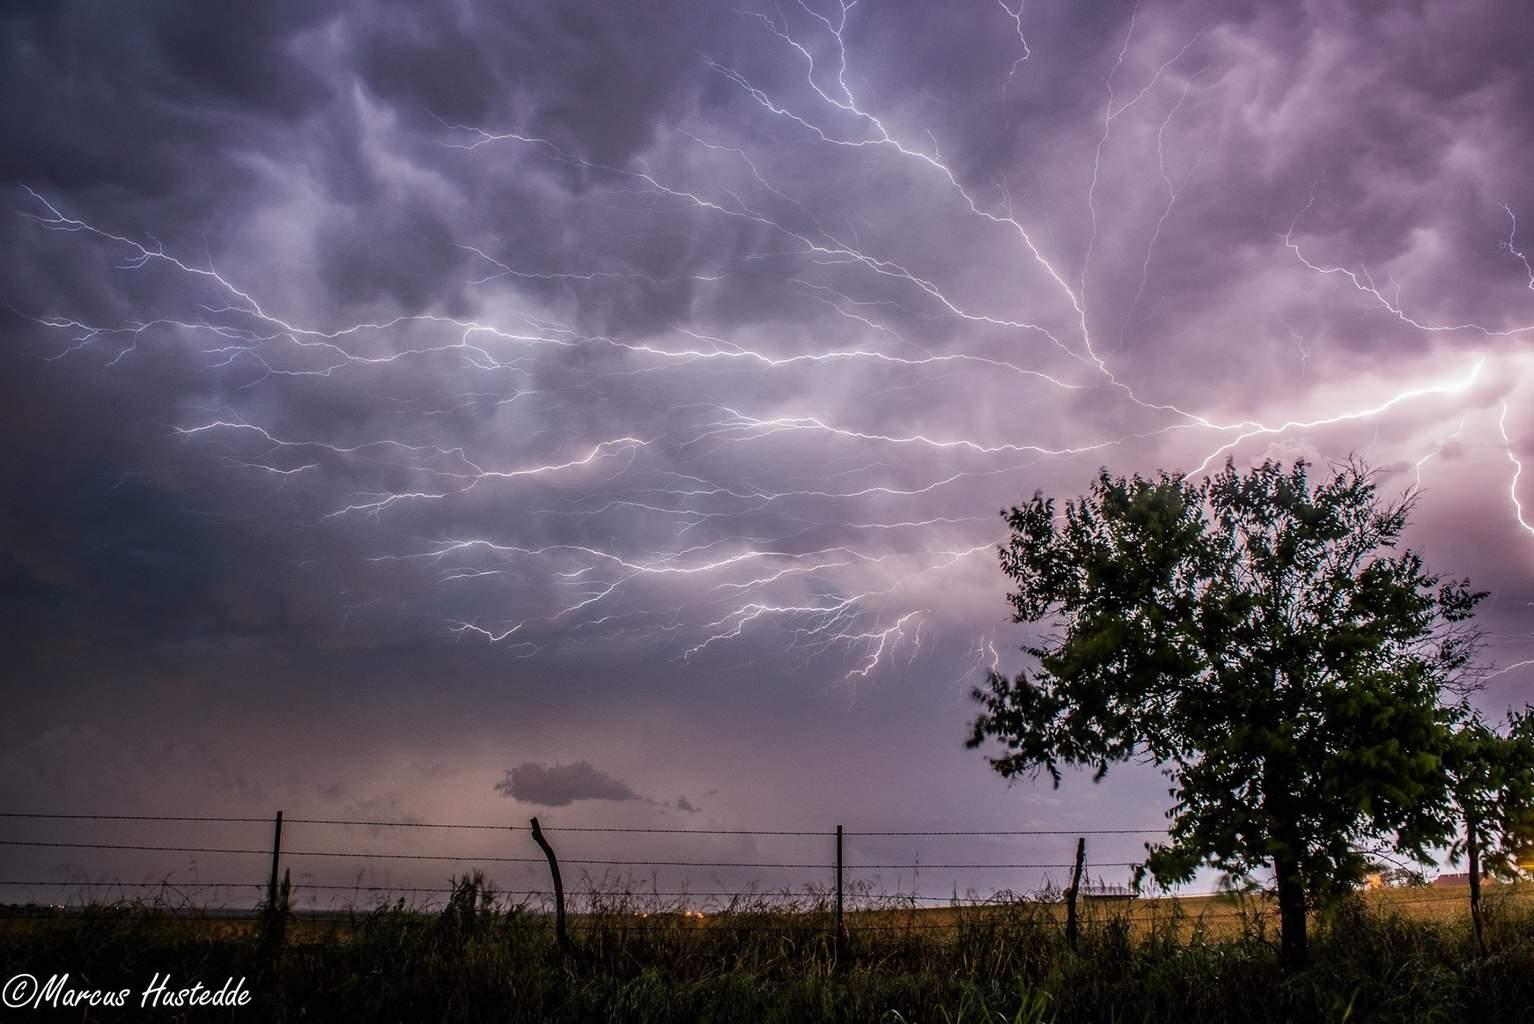 Spider lightning just south of Wichita Falls, TX this past Friday night